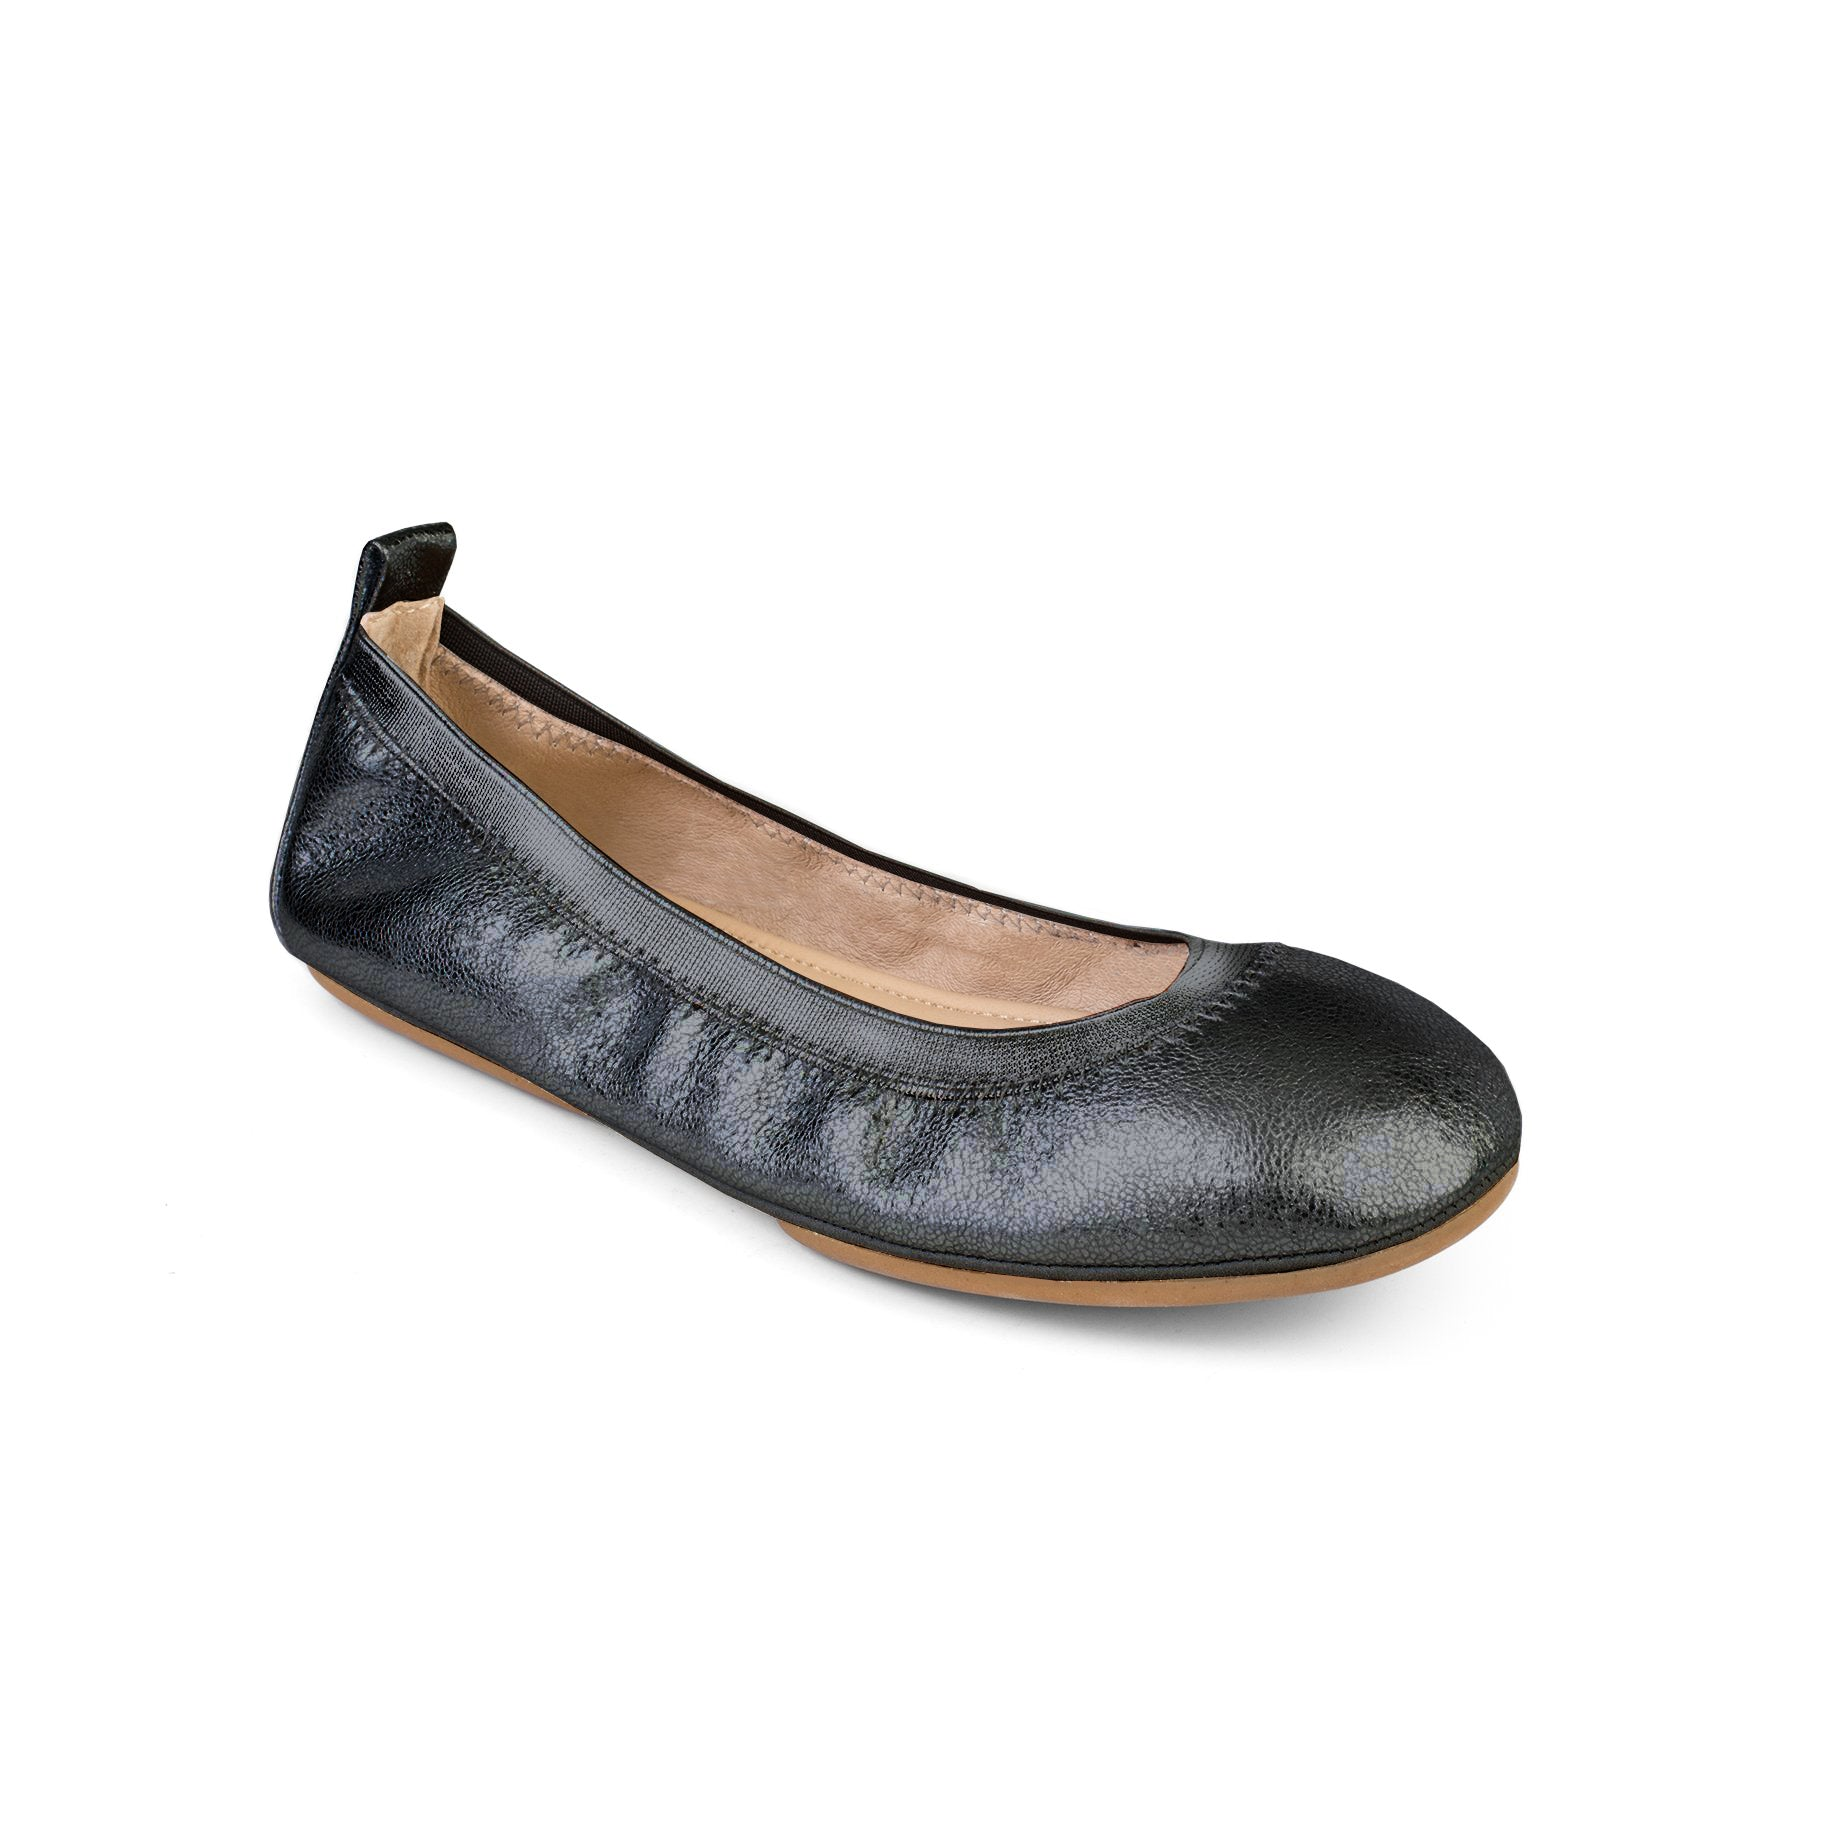 yosi samra pewter textured metallic leather ballet flat